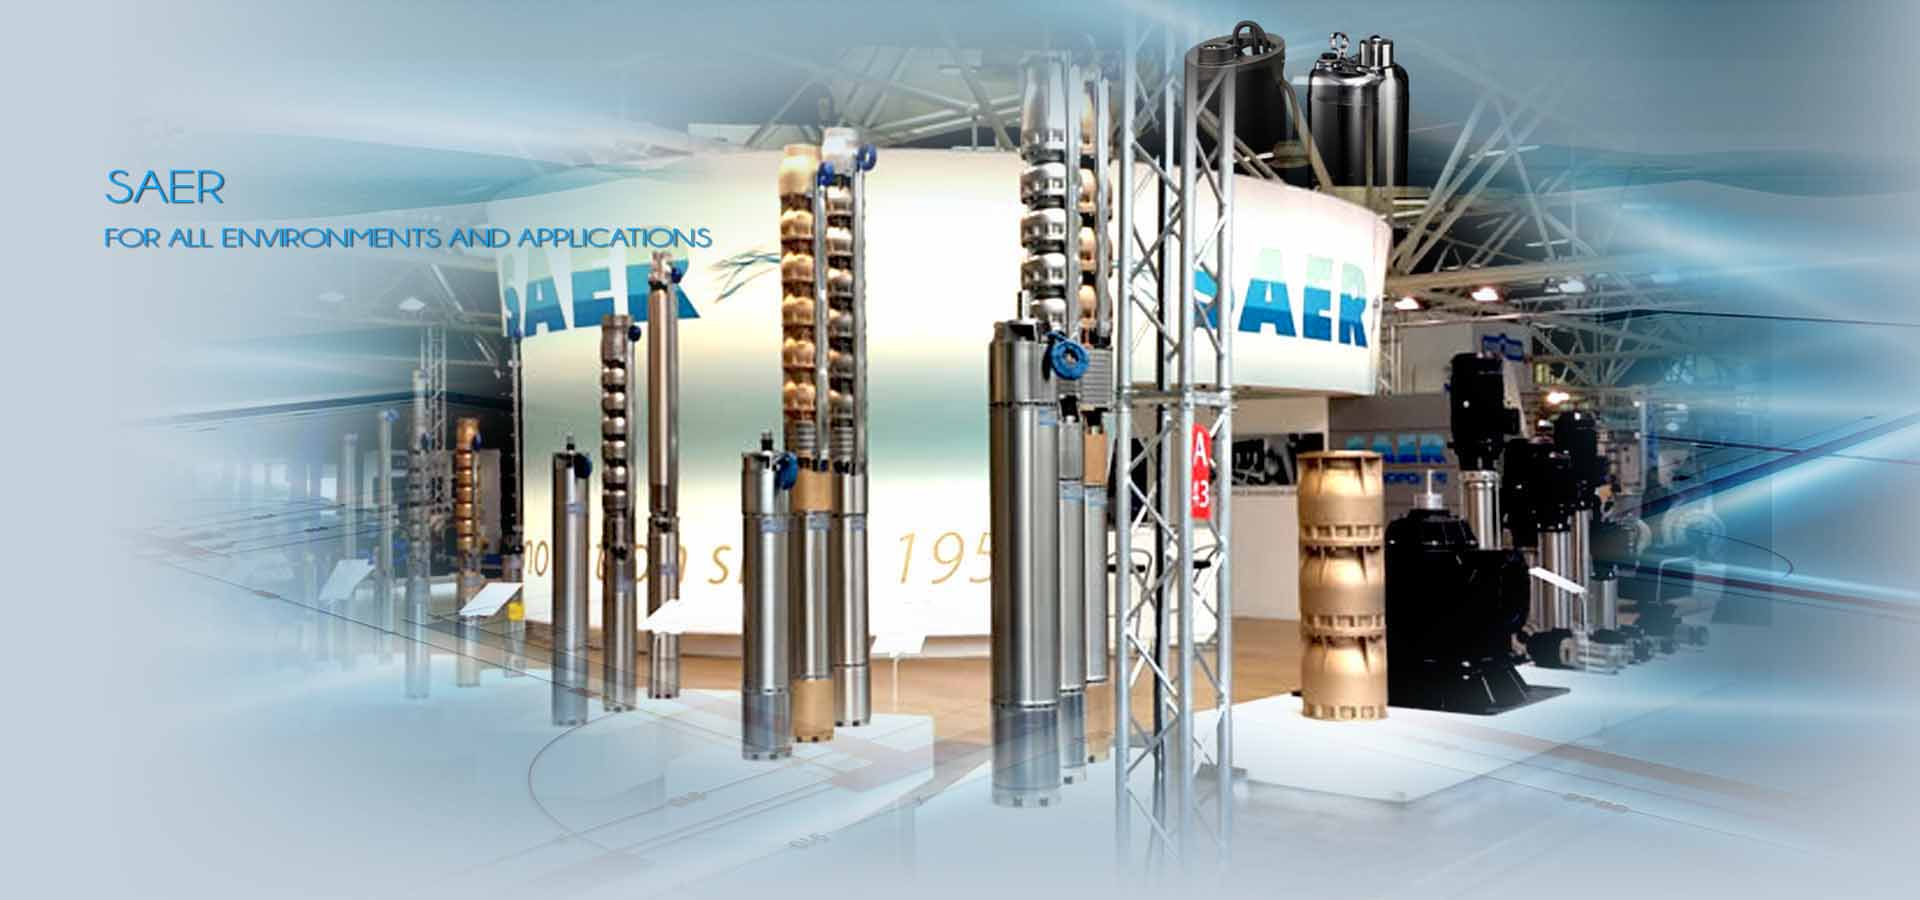 Saer Lorentz Submersible Solar Water Pump Tube well systems